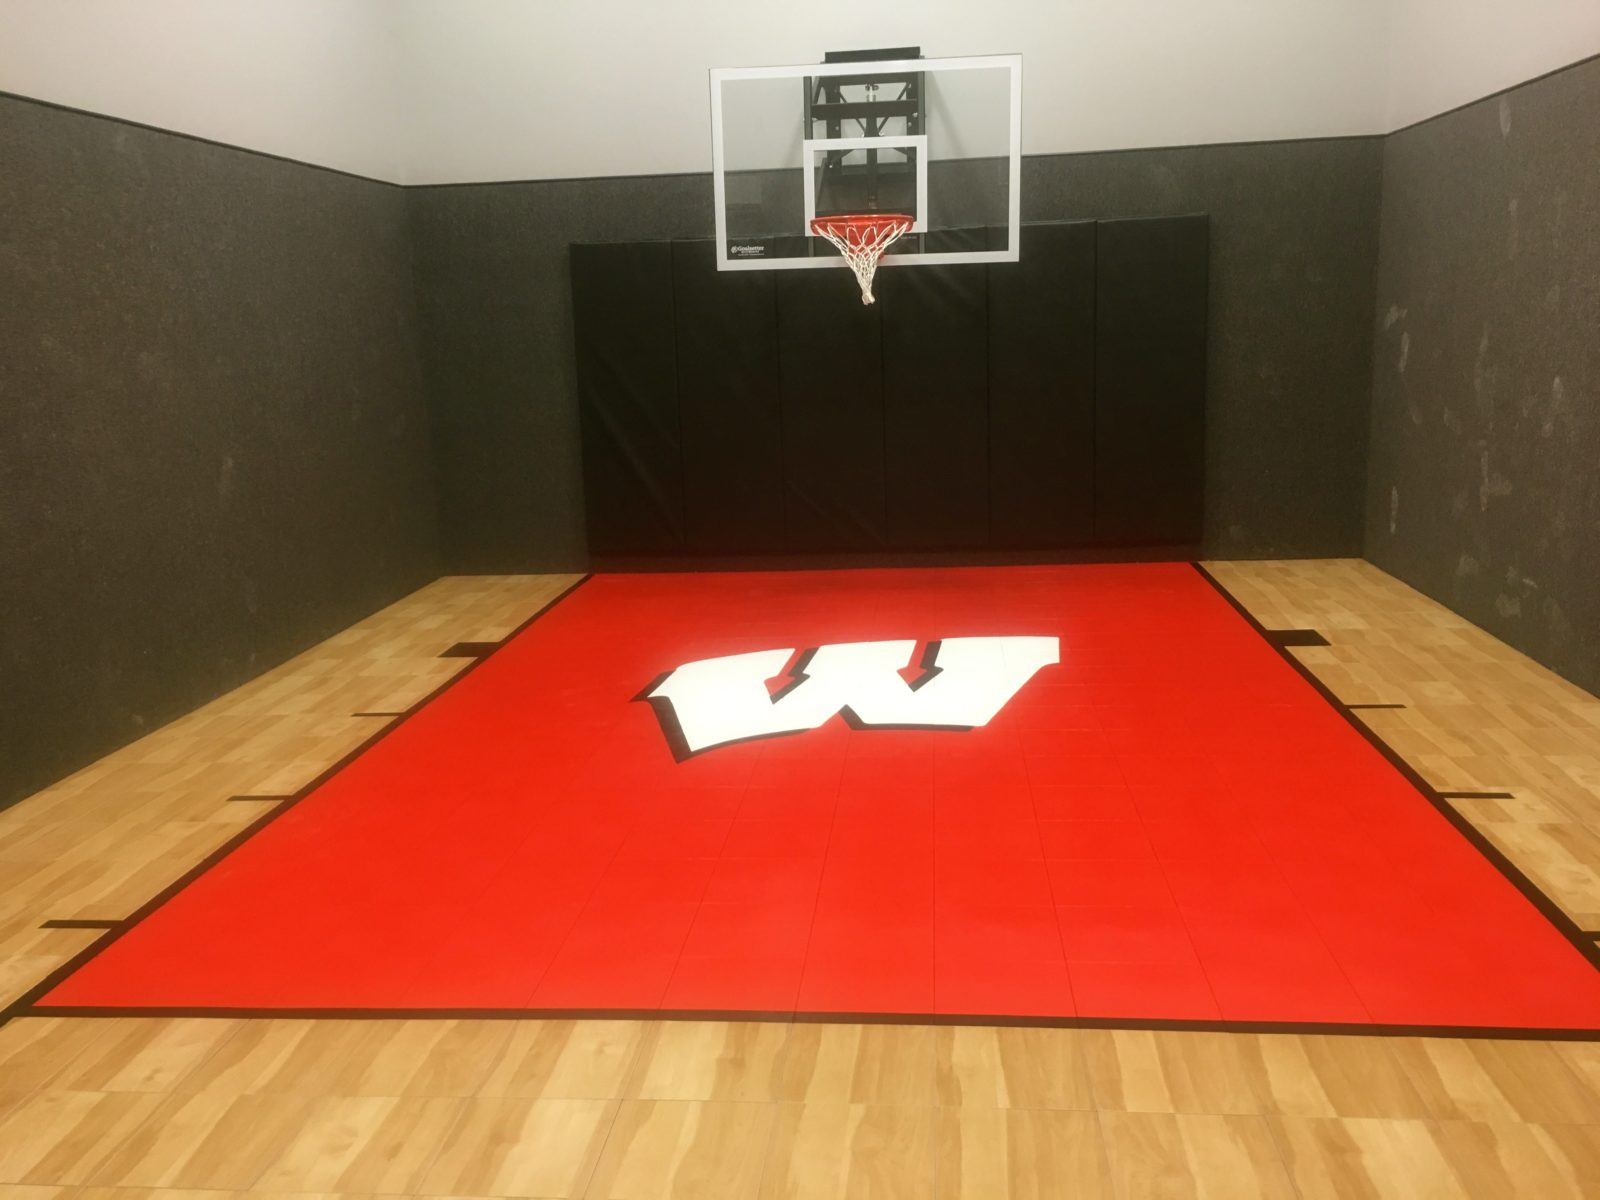 Indoor home gyms courts athletic surfaces millz house for Indoor basketball court price